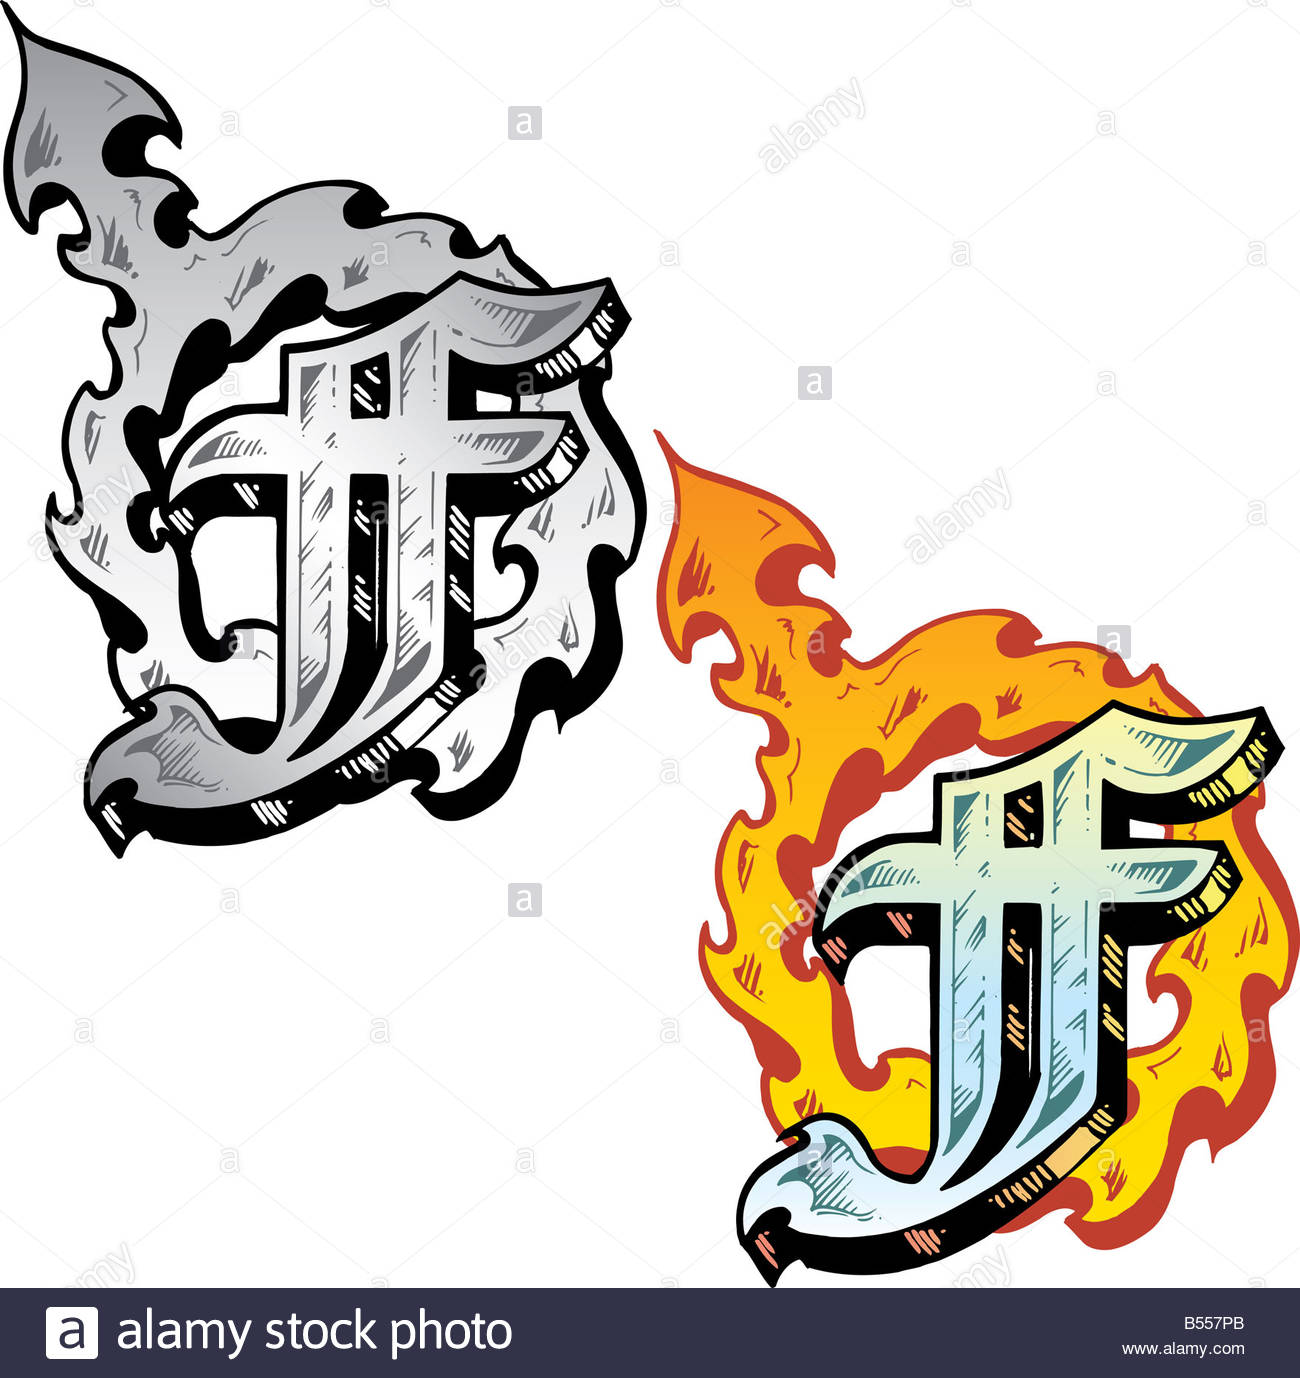 Hand Drawn Tattoo Style Letter F With Relevant Symbols Incorporated Including A Flaming Female Symbol